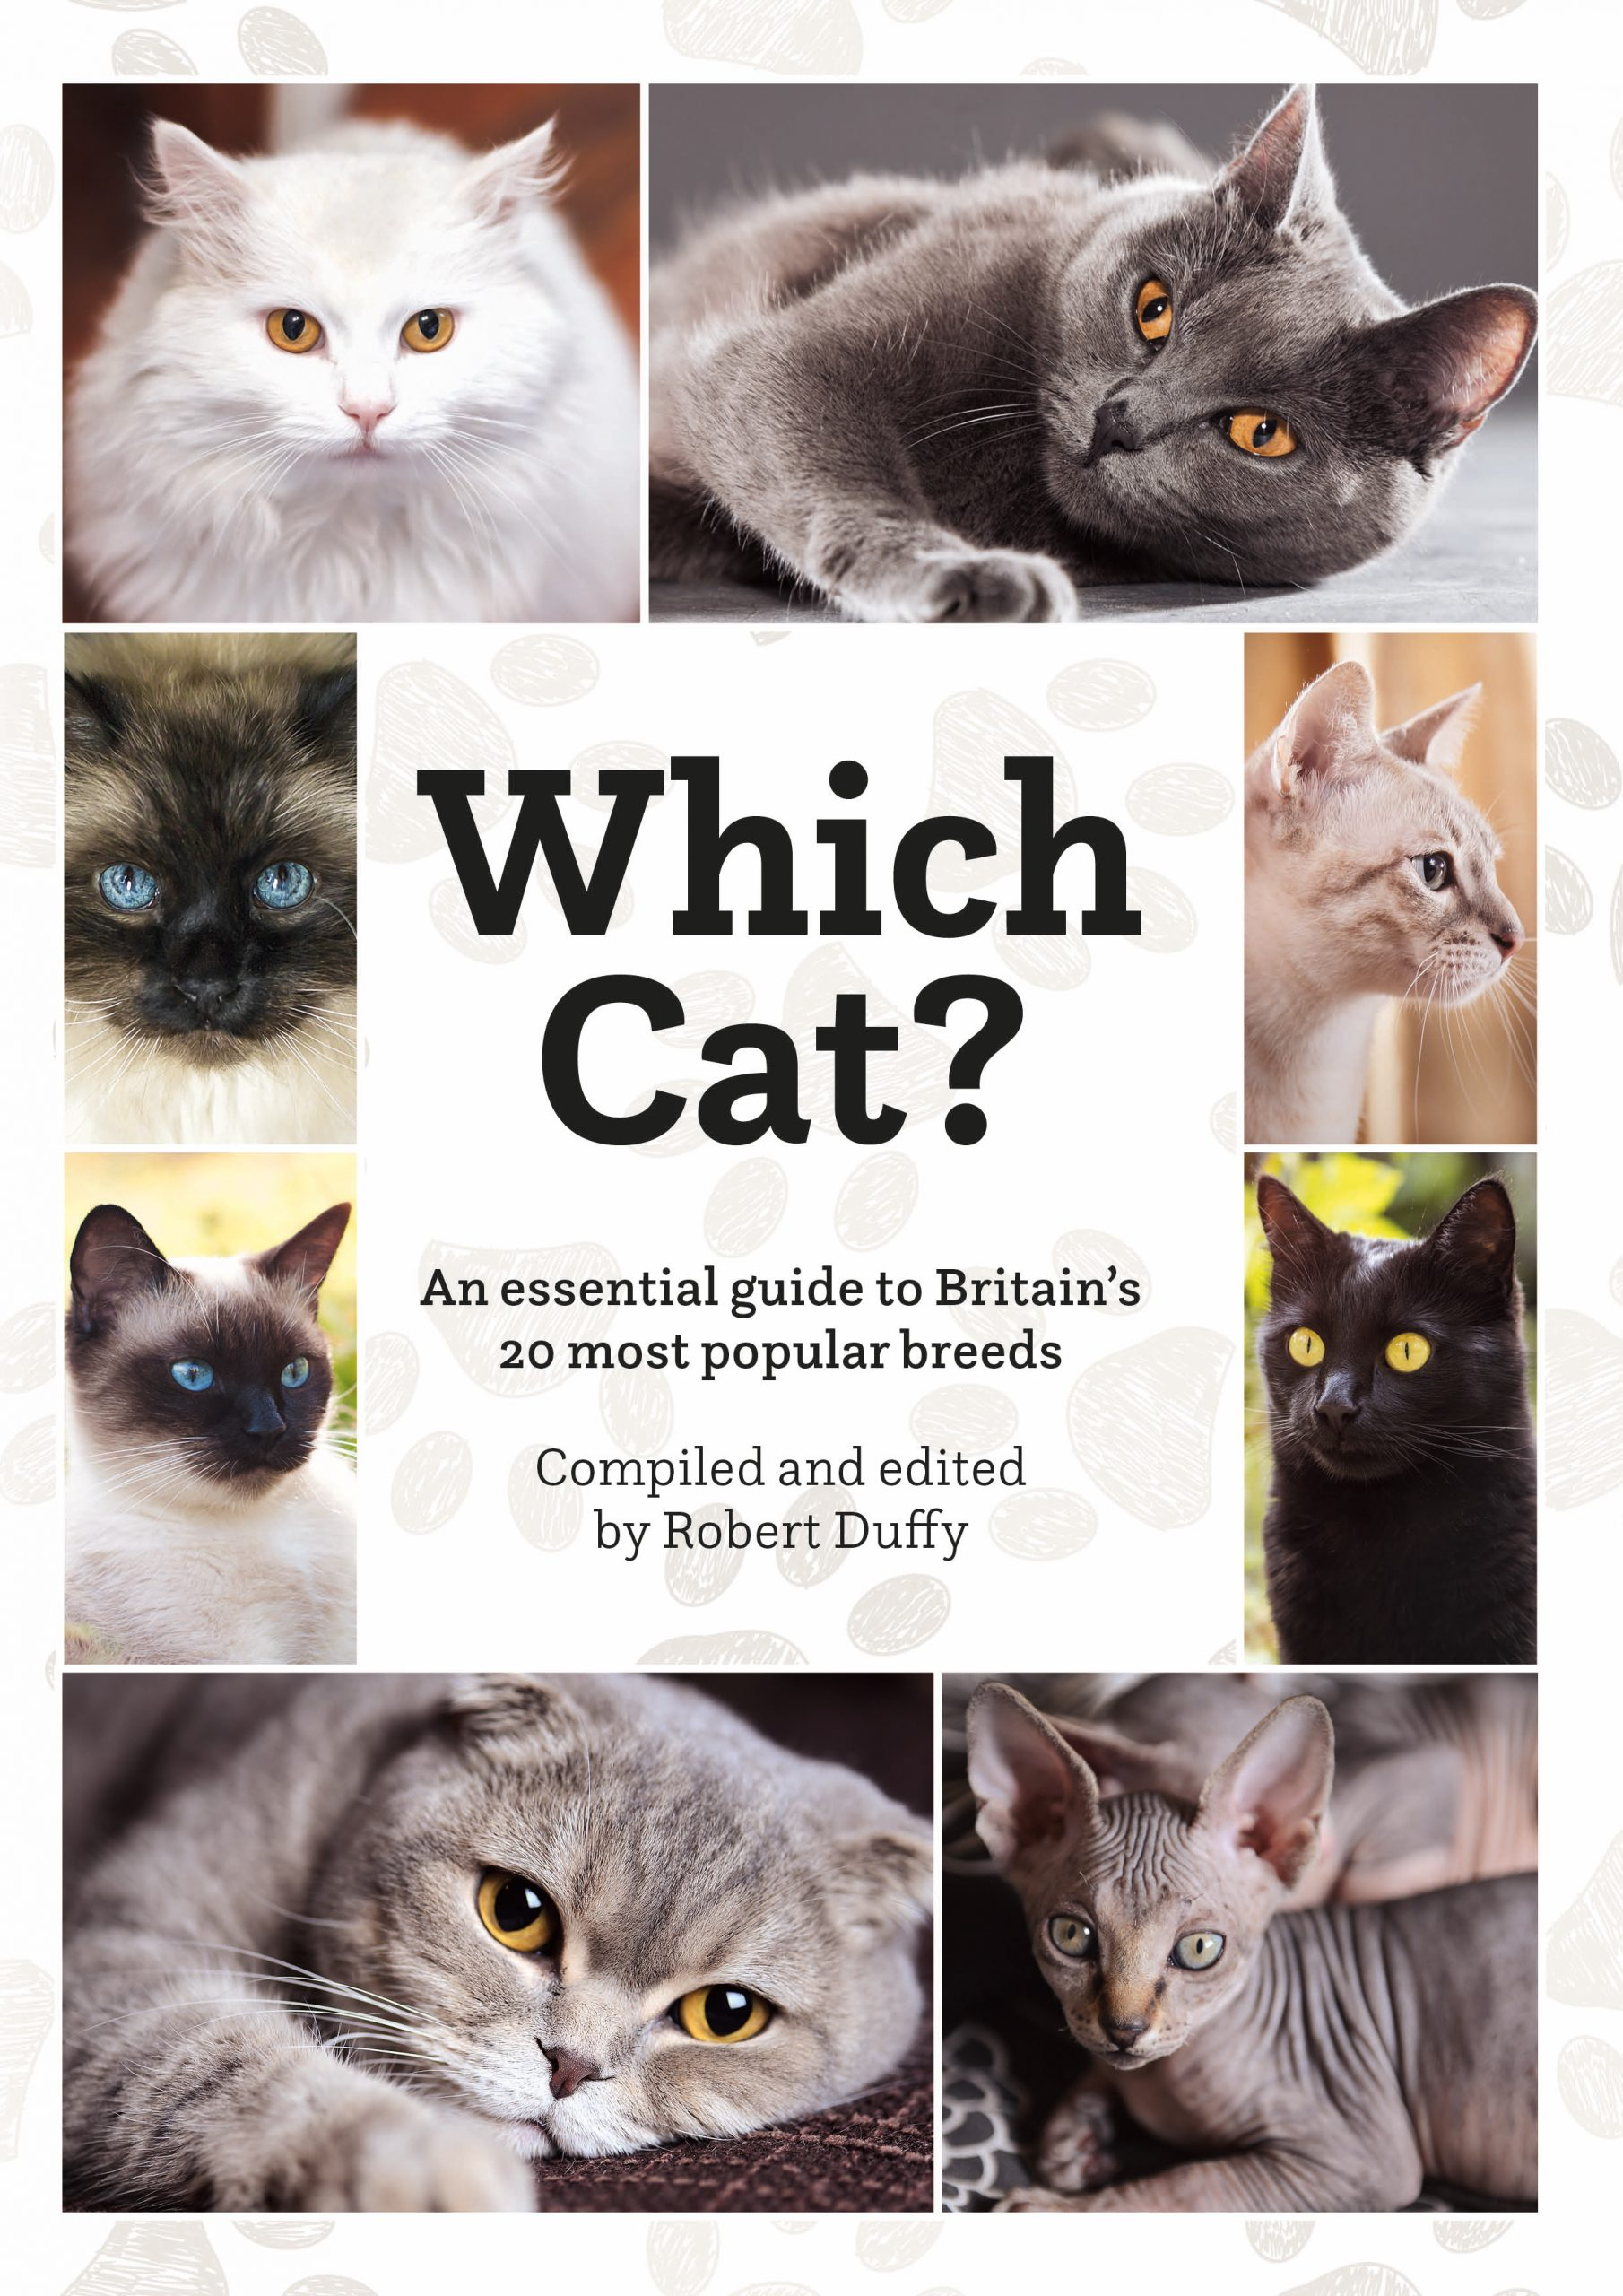 Which Cat? An Essential Guide To Britain's 20 Most Popular Breeds